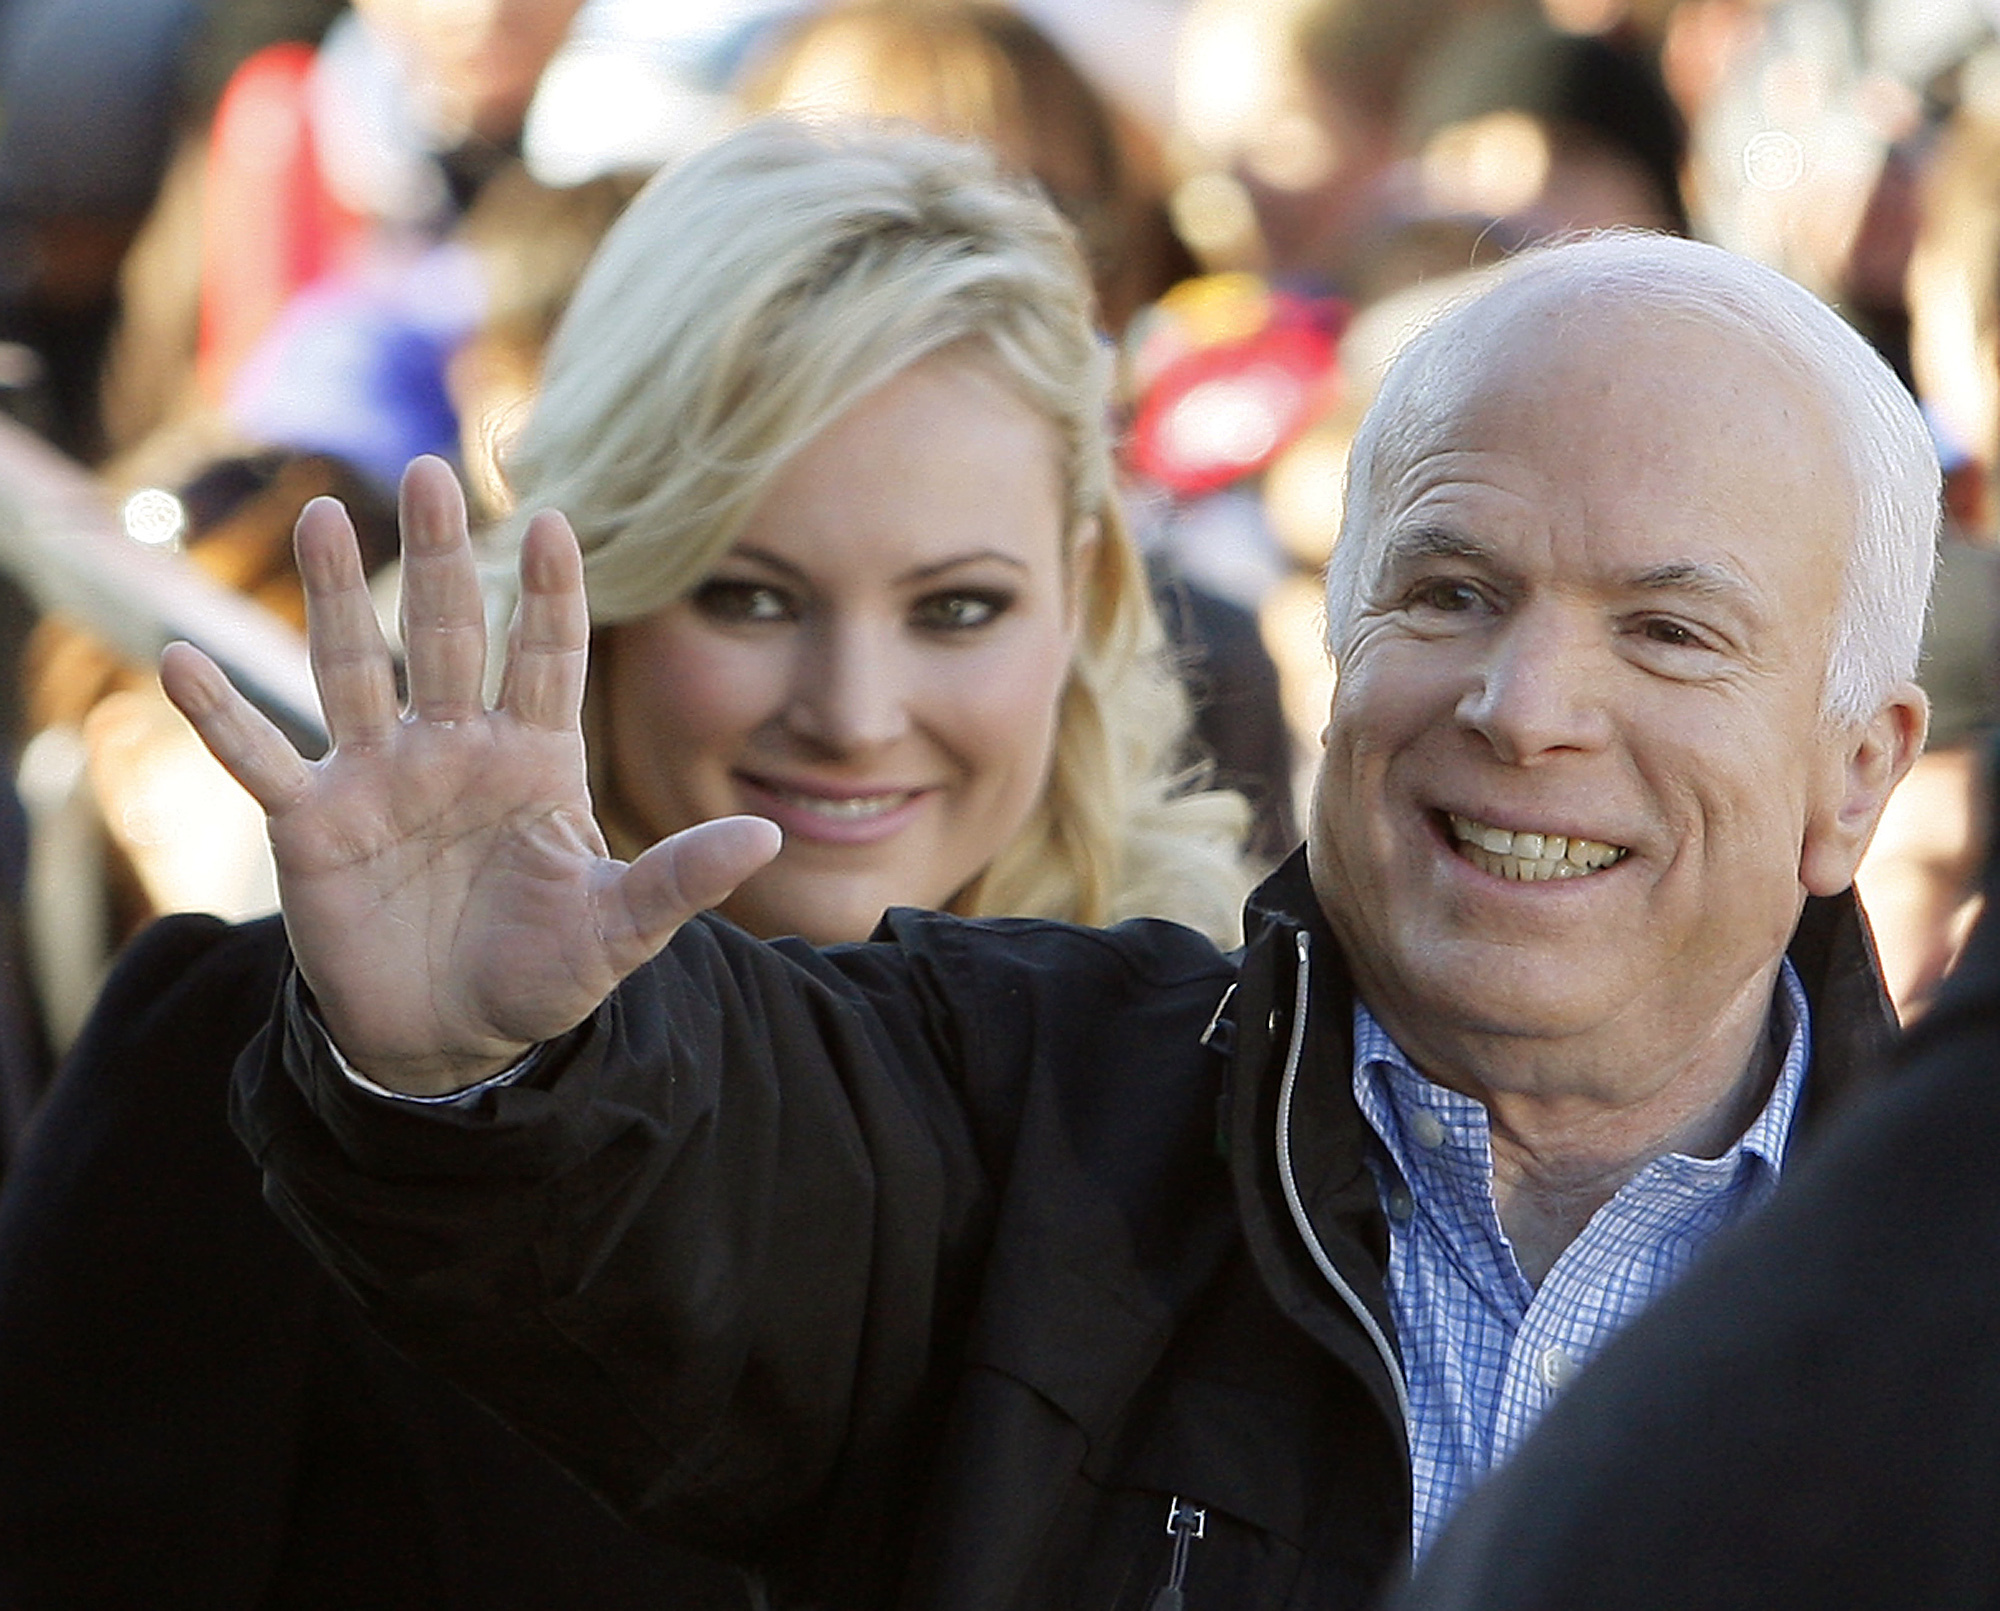 FILE - In this Oct. 30, 2008 file photo, Republican presidential candidate Sen. John McCain, R-Ariz., accompanied by his daughter Meghan McCain, waves to supporters as he enters a campaign rally in Defiance, Ohio. (AP Photo/Stephan Savoia)